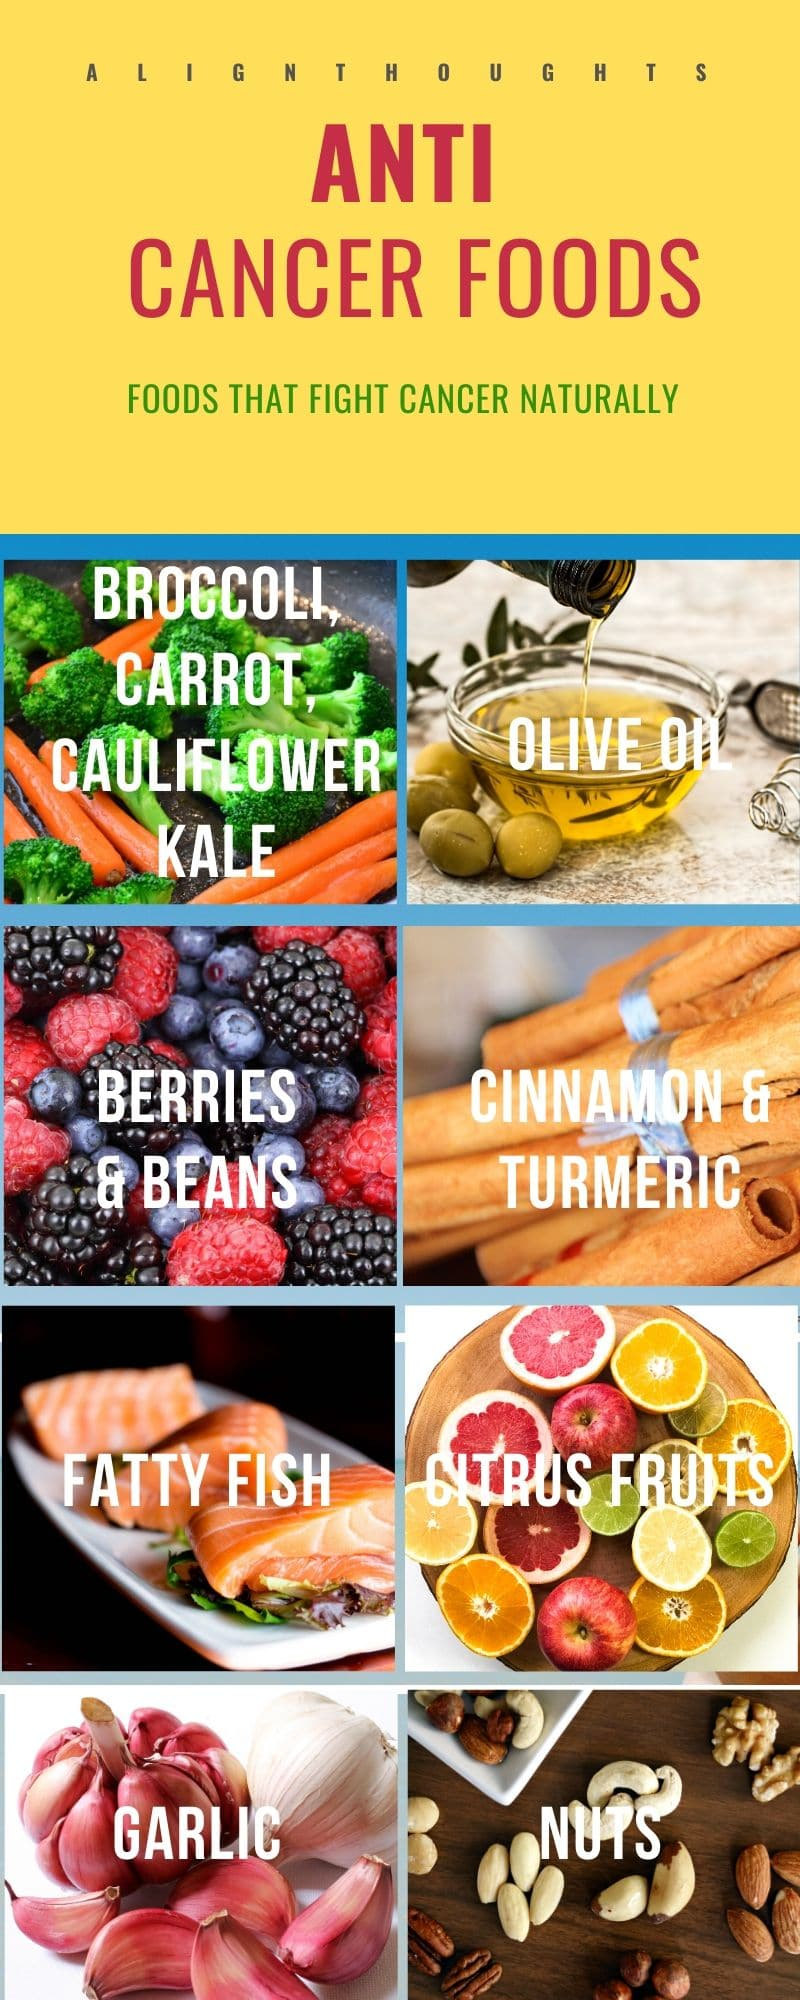 anti cancer foods to prevent cancer naturally